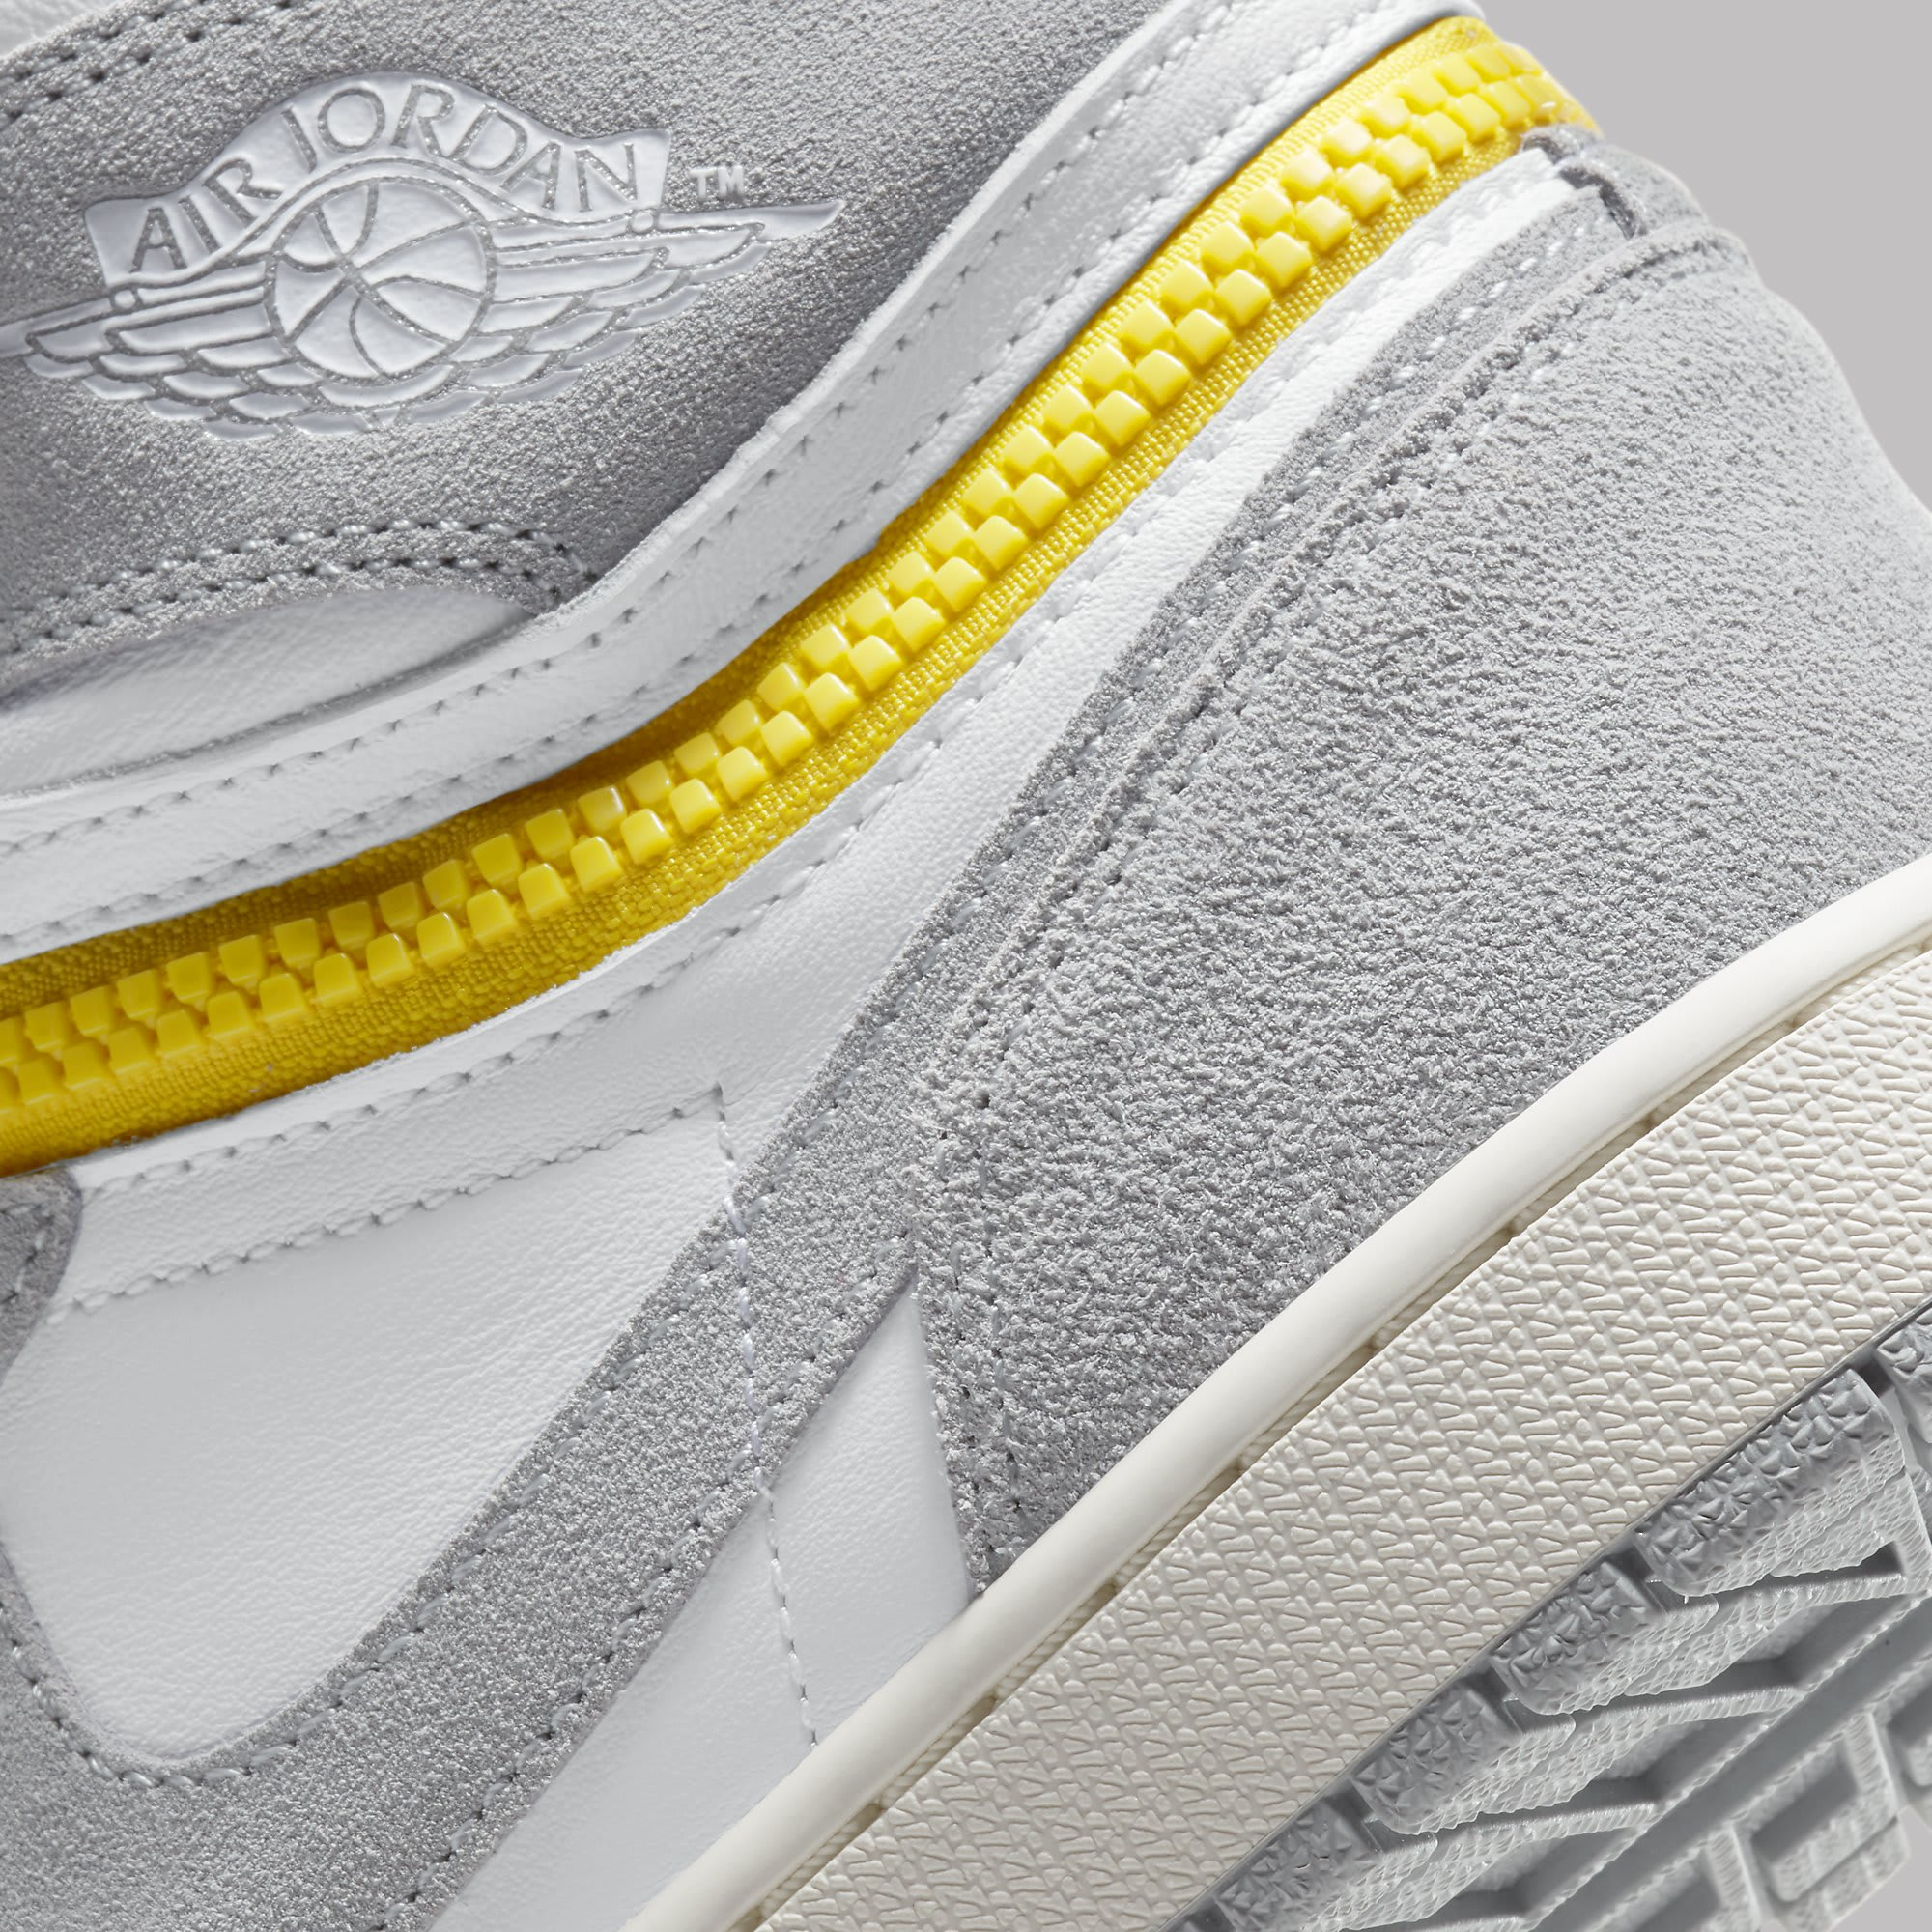 Air Jordan 1 High Switch White Light Smoke Grey Sail Tour Yellow Release Date CW6576-100 Heel Detail